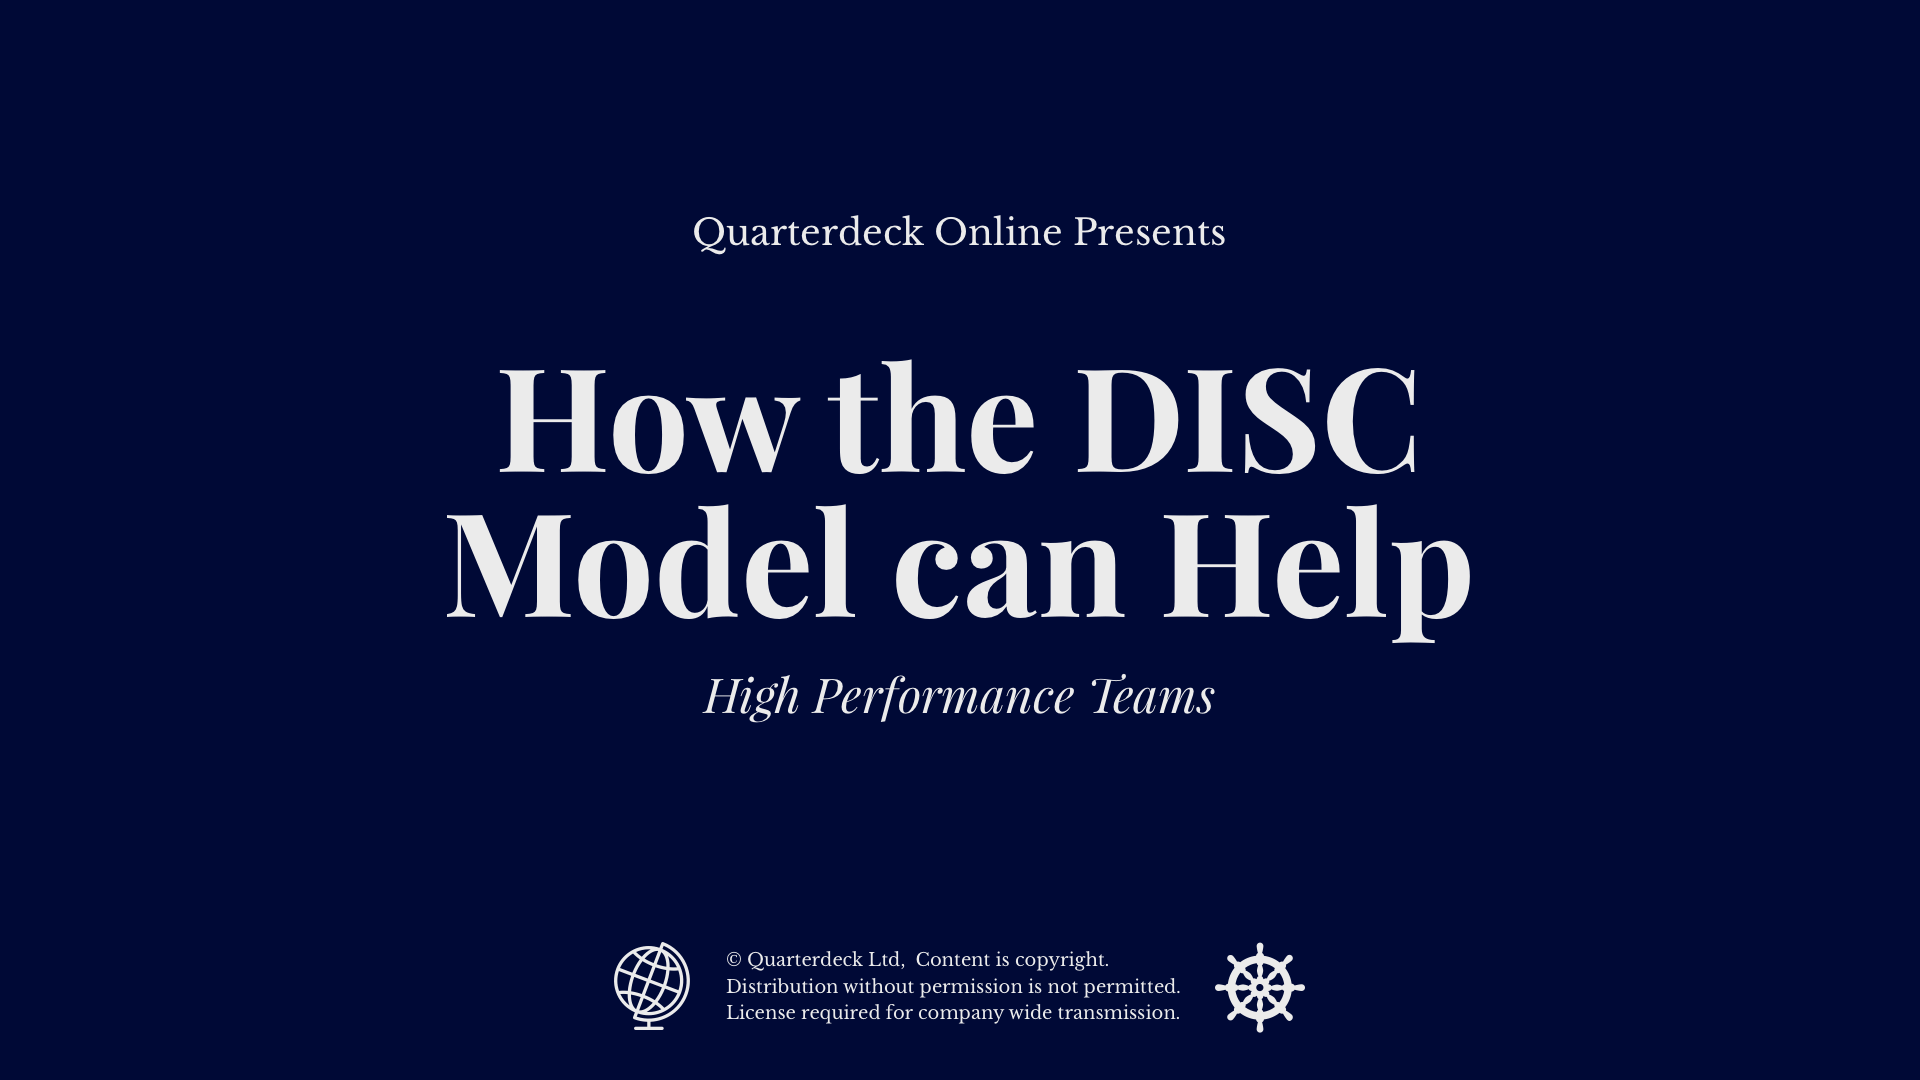 How the DISC Model can Help